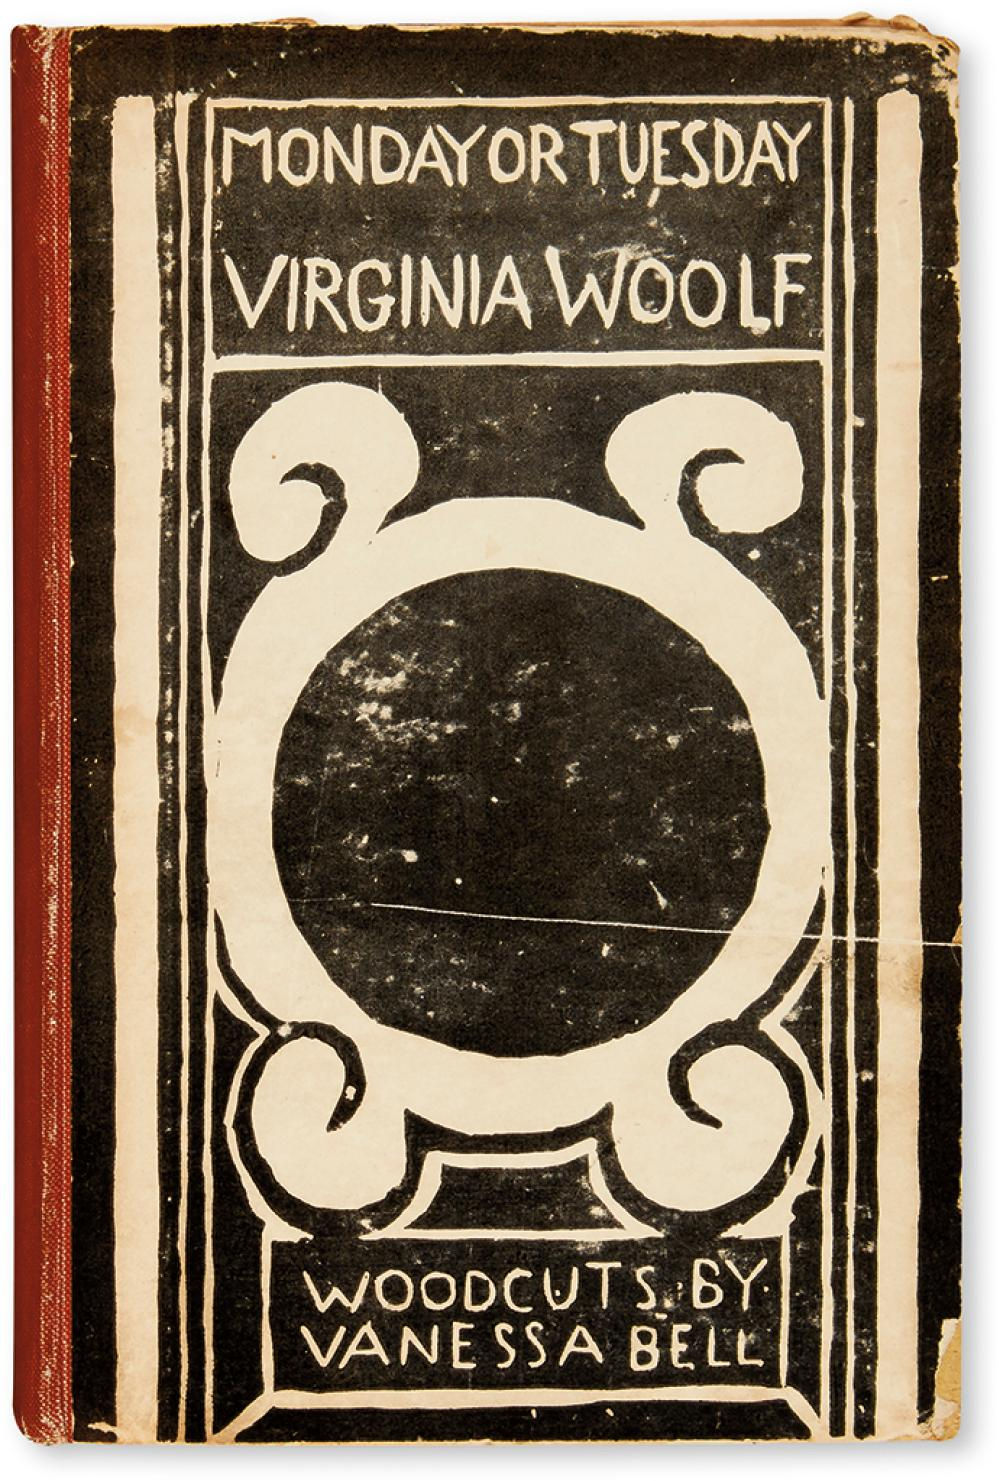 WOOLF, VIRGINIA. Monday or Tuesday.